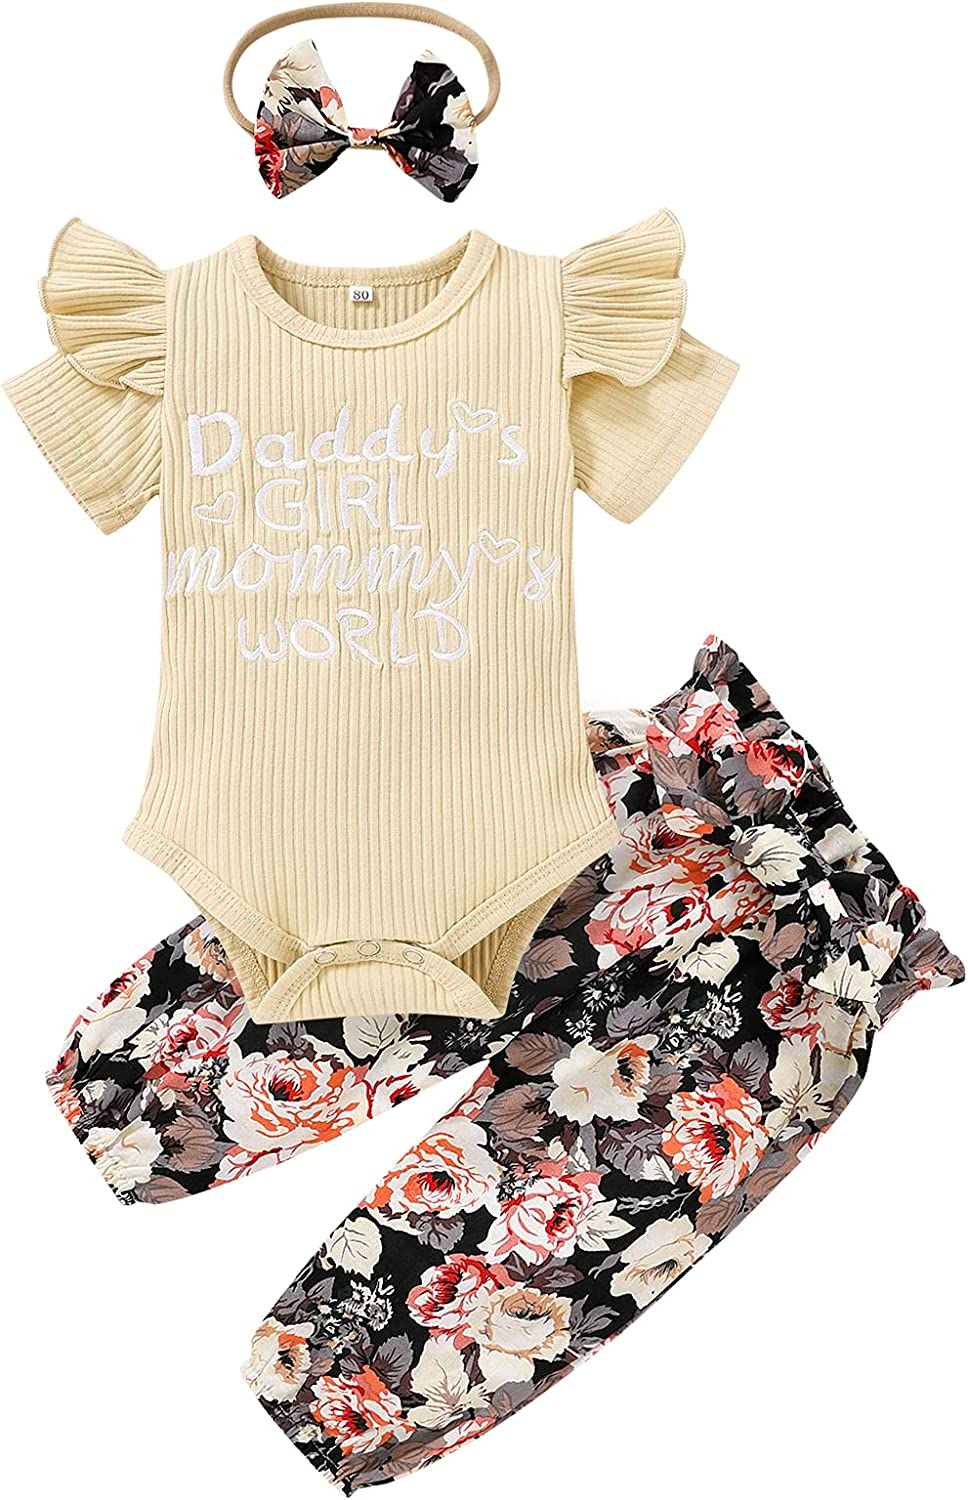 Infant Baby Girl Clothes Summer Baby Ribbed Romper Embroidered Letters Onesies Floral Skirt Pants Toddler Outfits Shorts Set